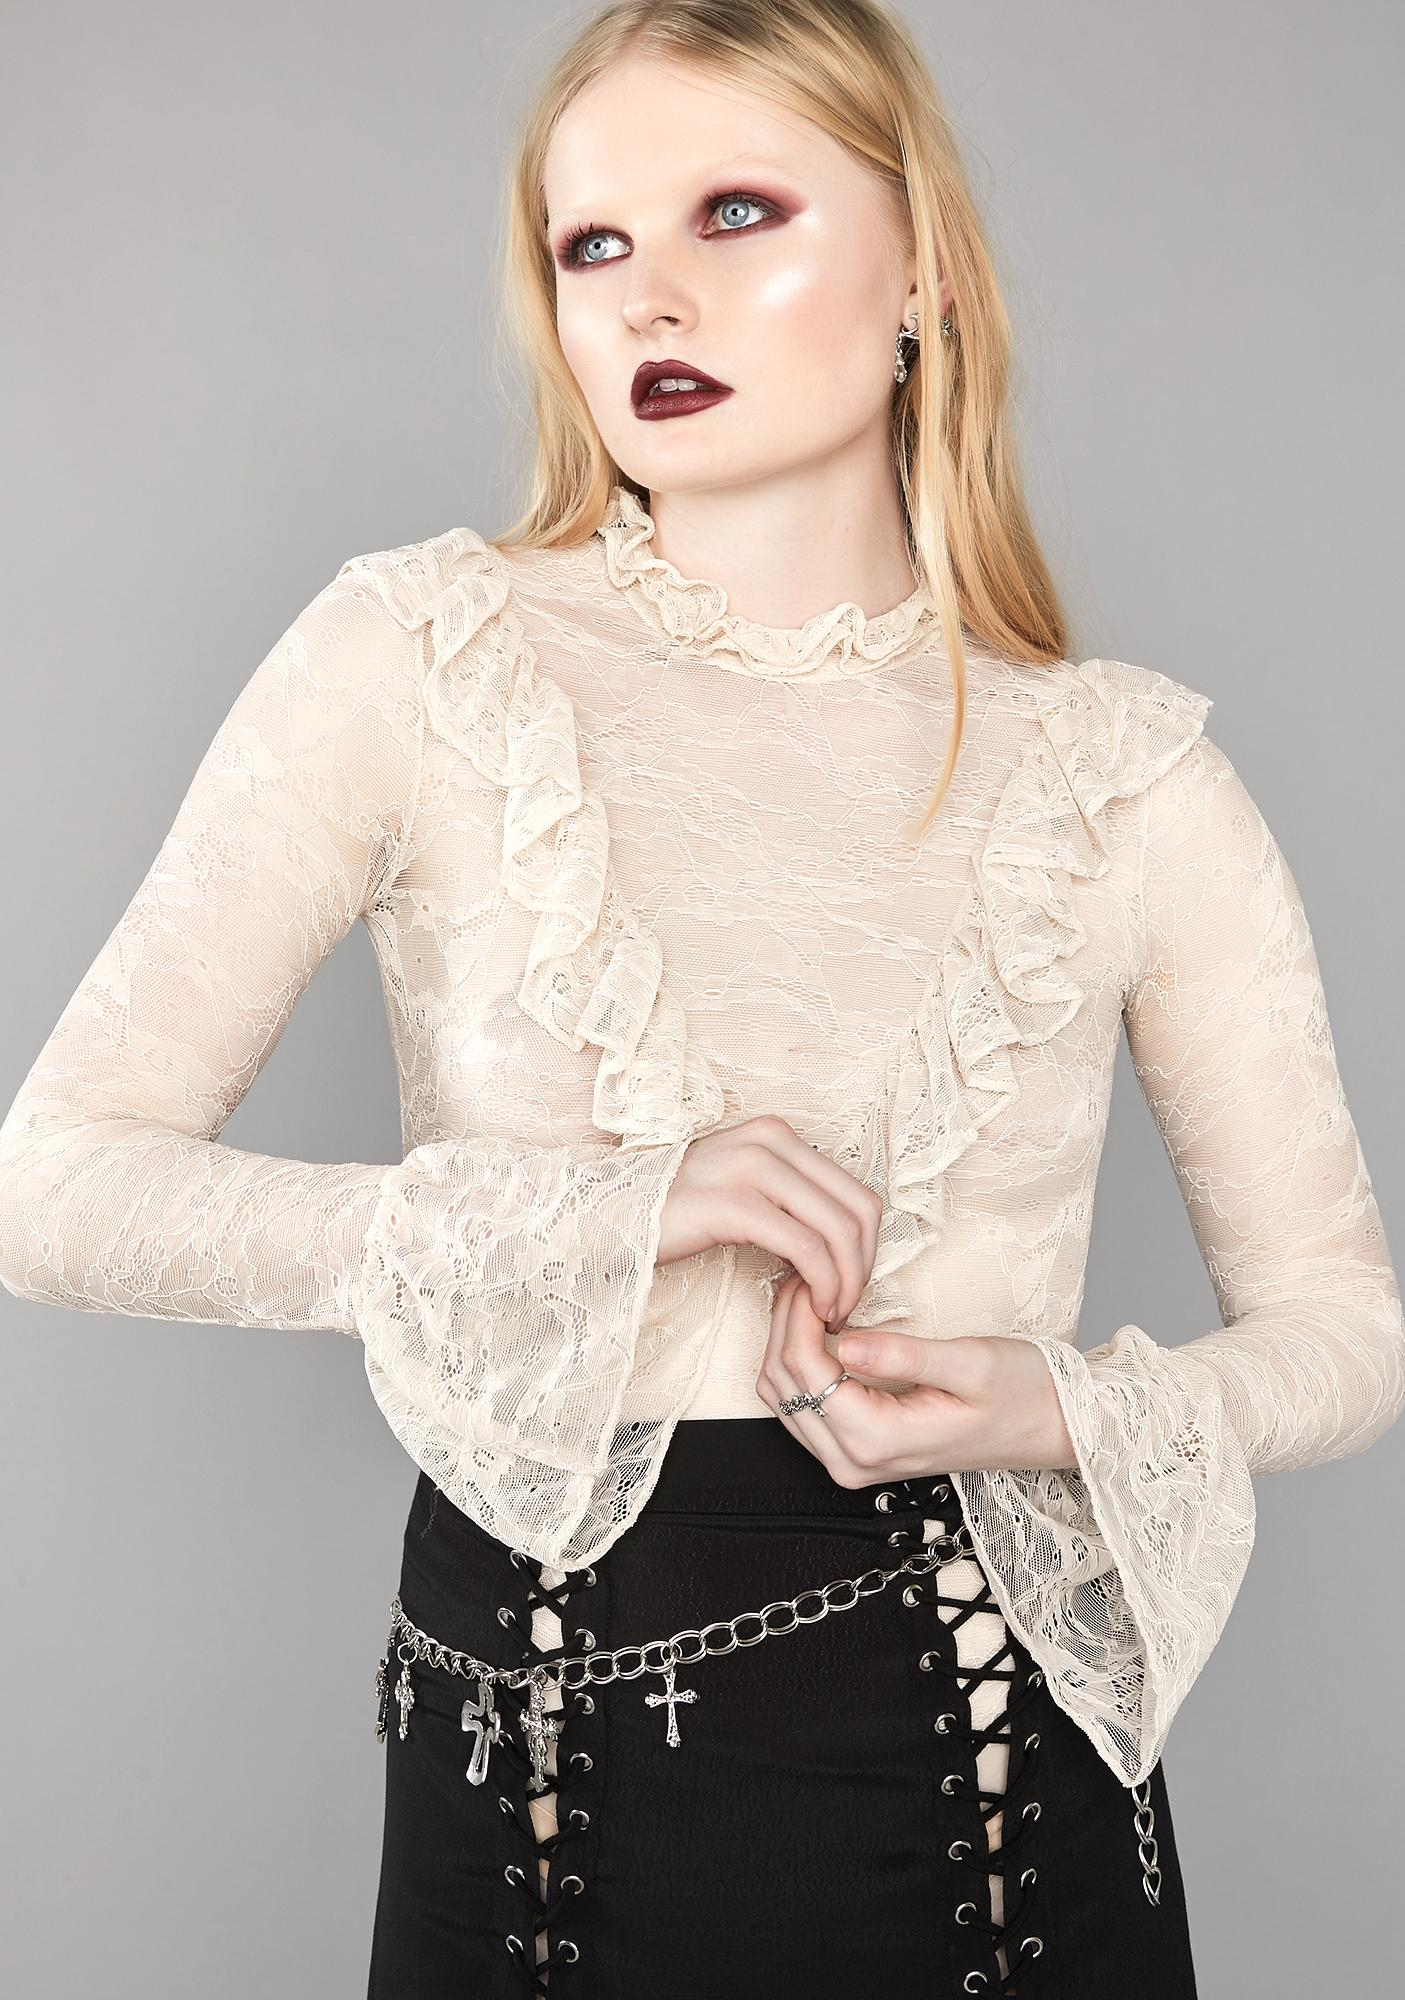 Widow Mourning Heart Lace Top